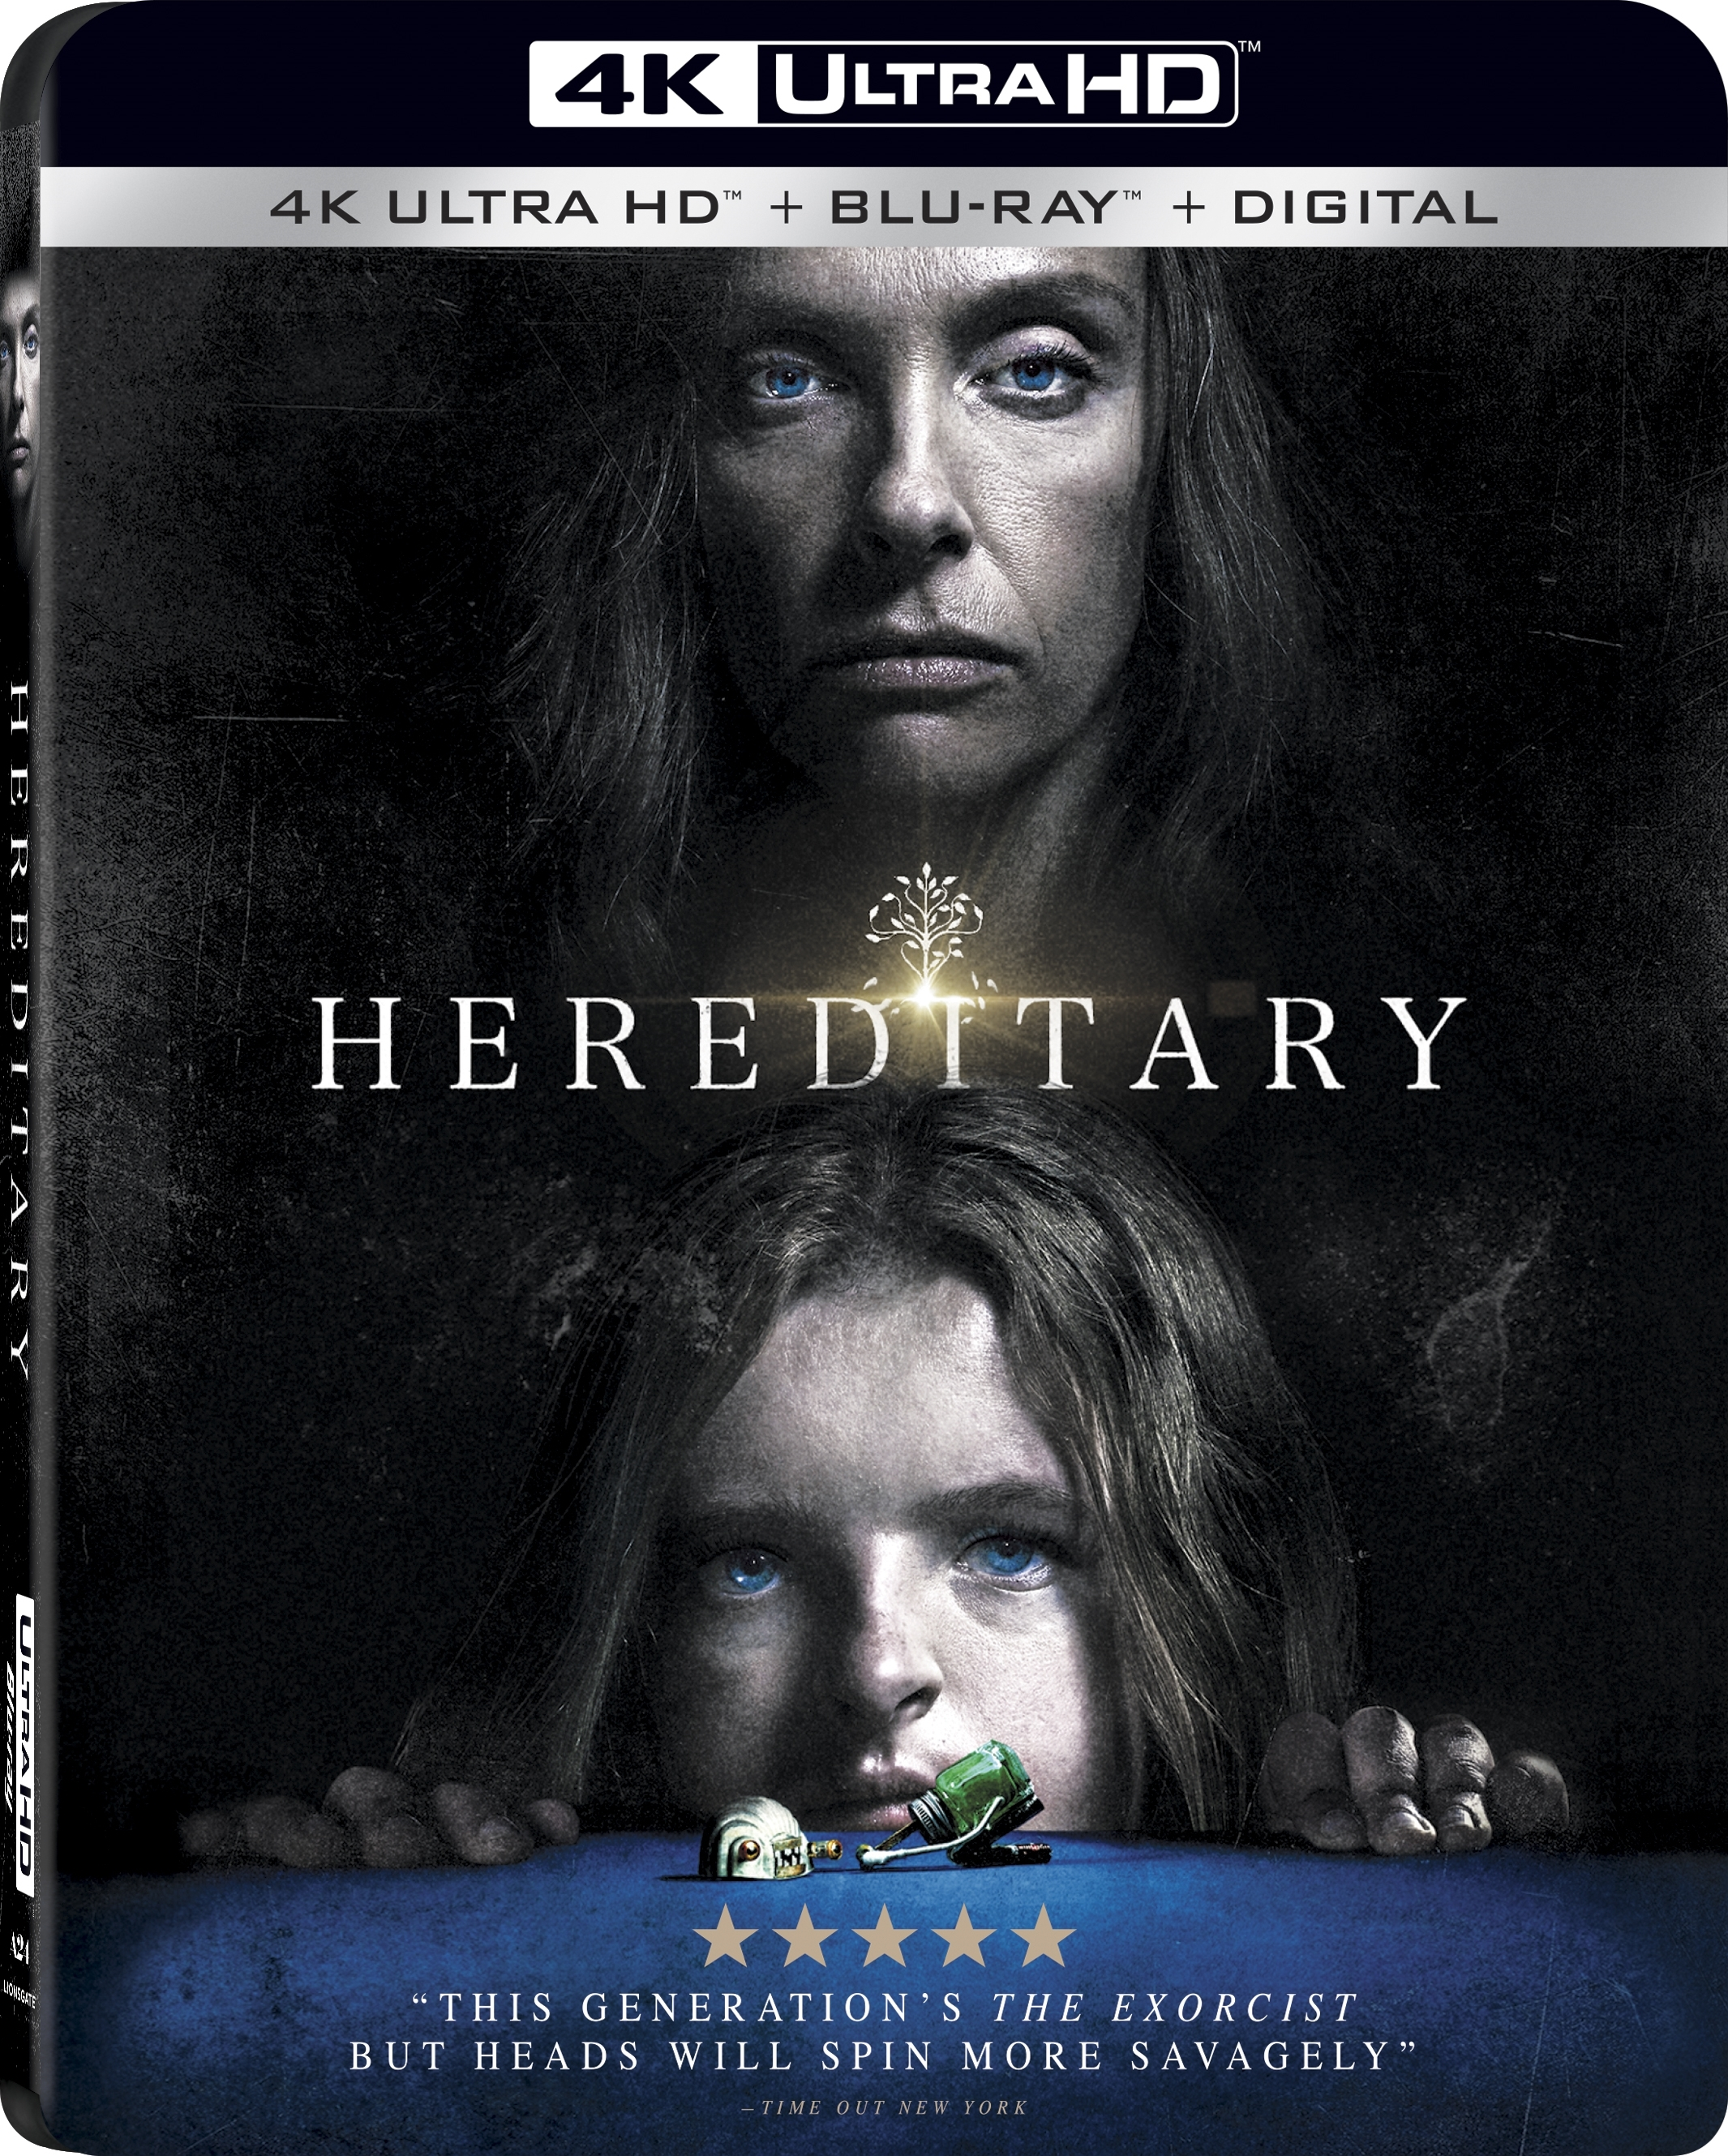 Hereditary (2018) 4K Ultra HD Blu-ray